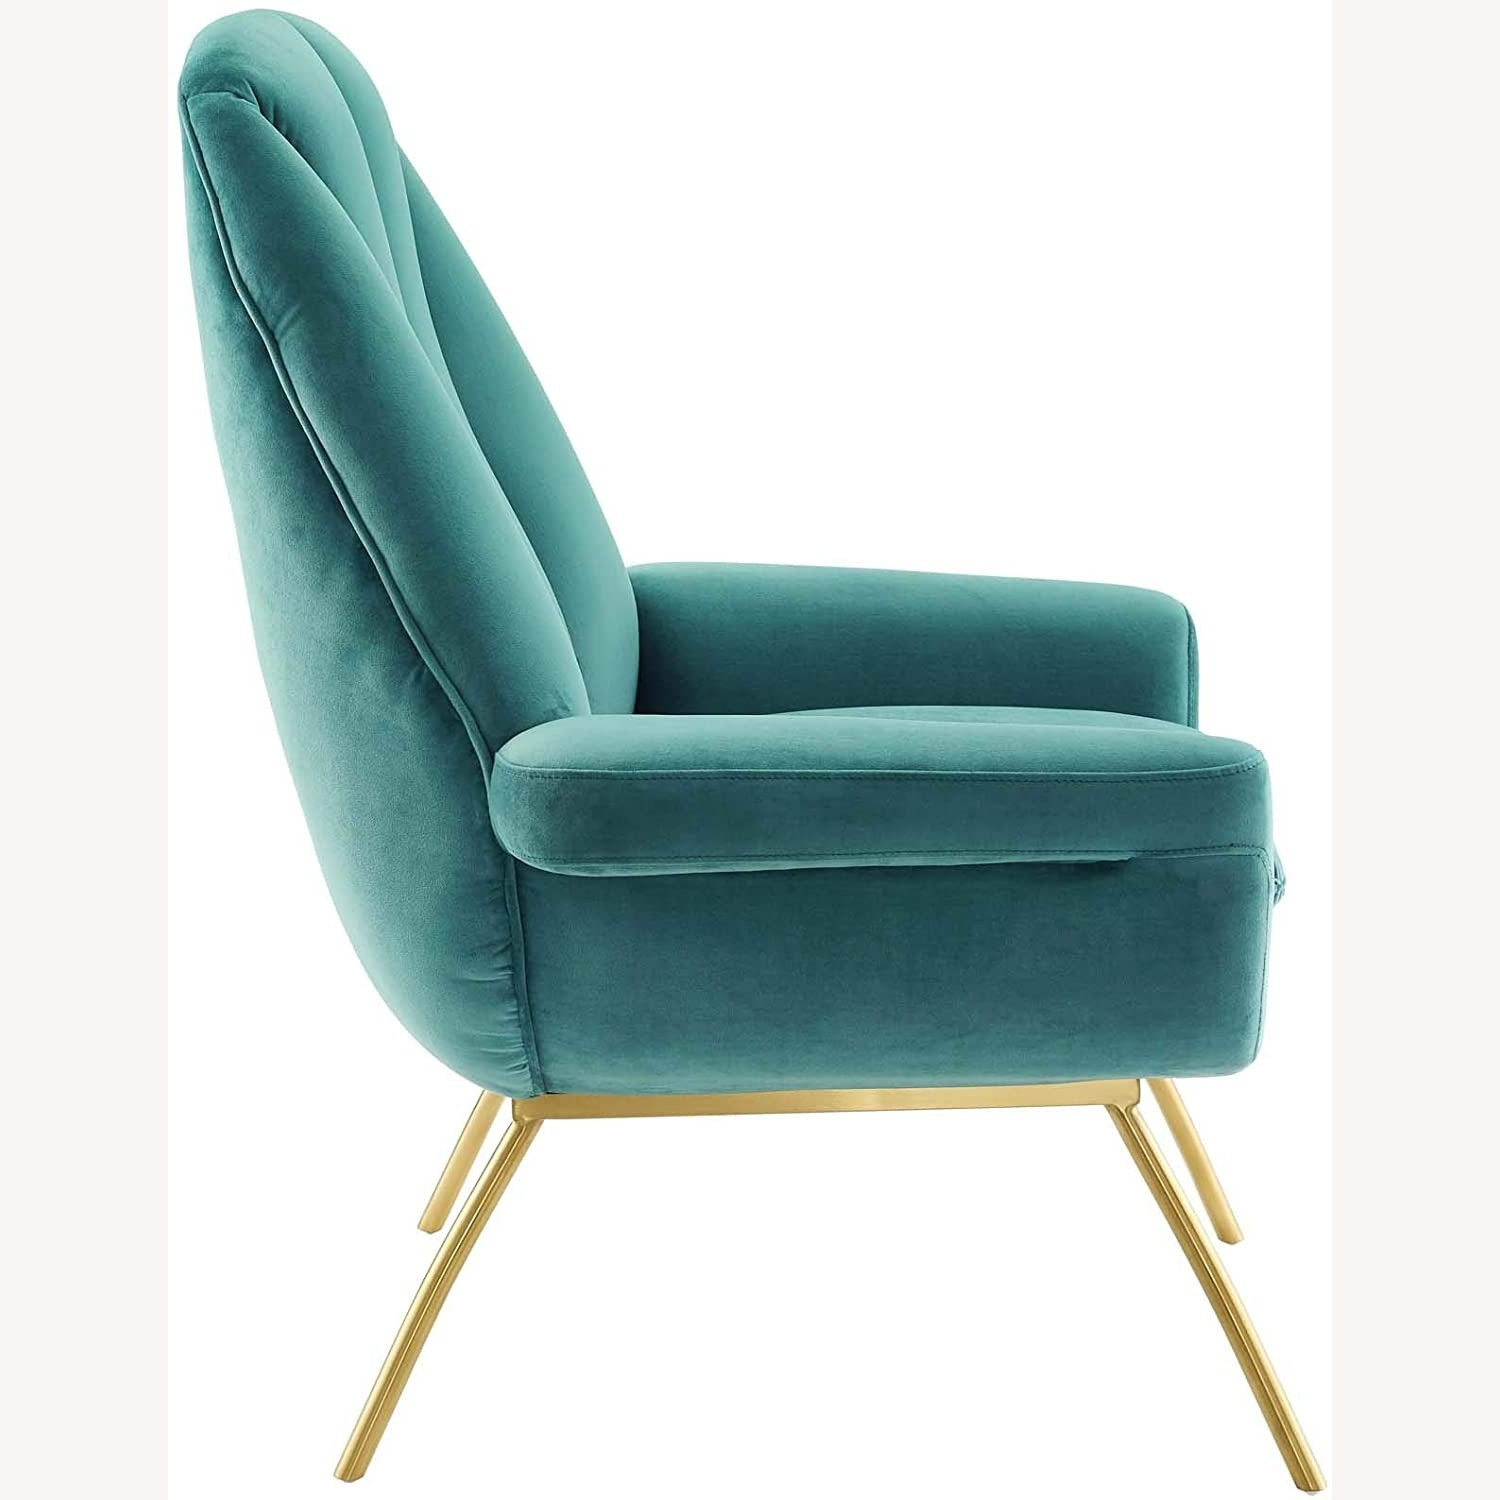 Accent Chair In Teal Velvet Upholstery Finish - image-1